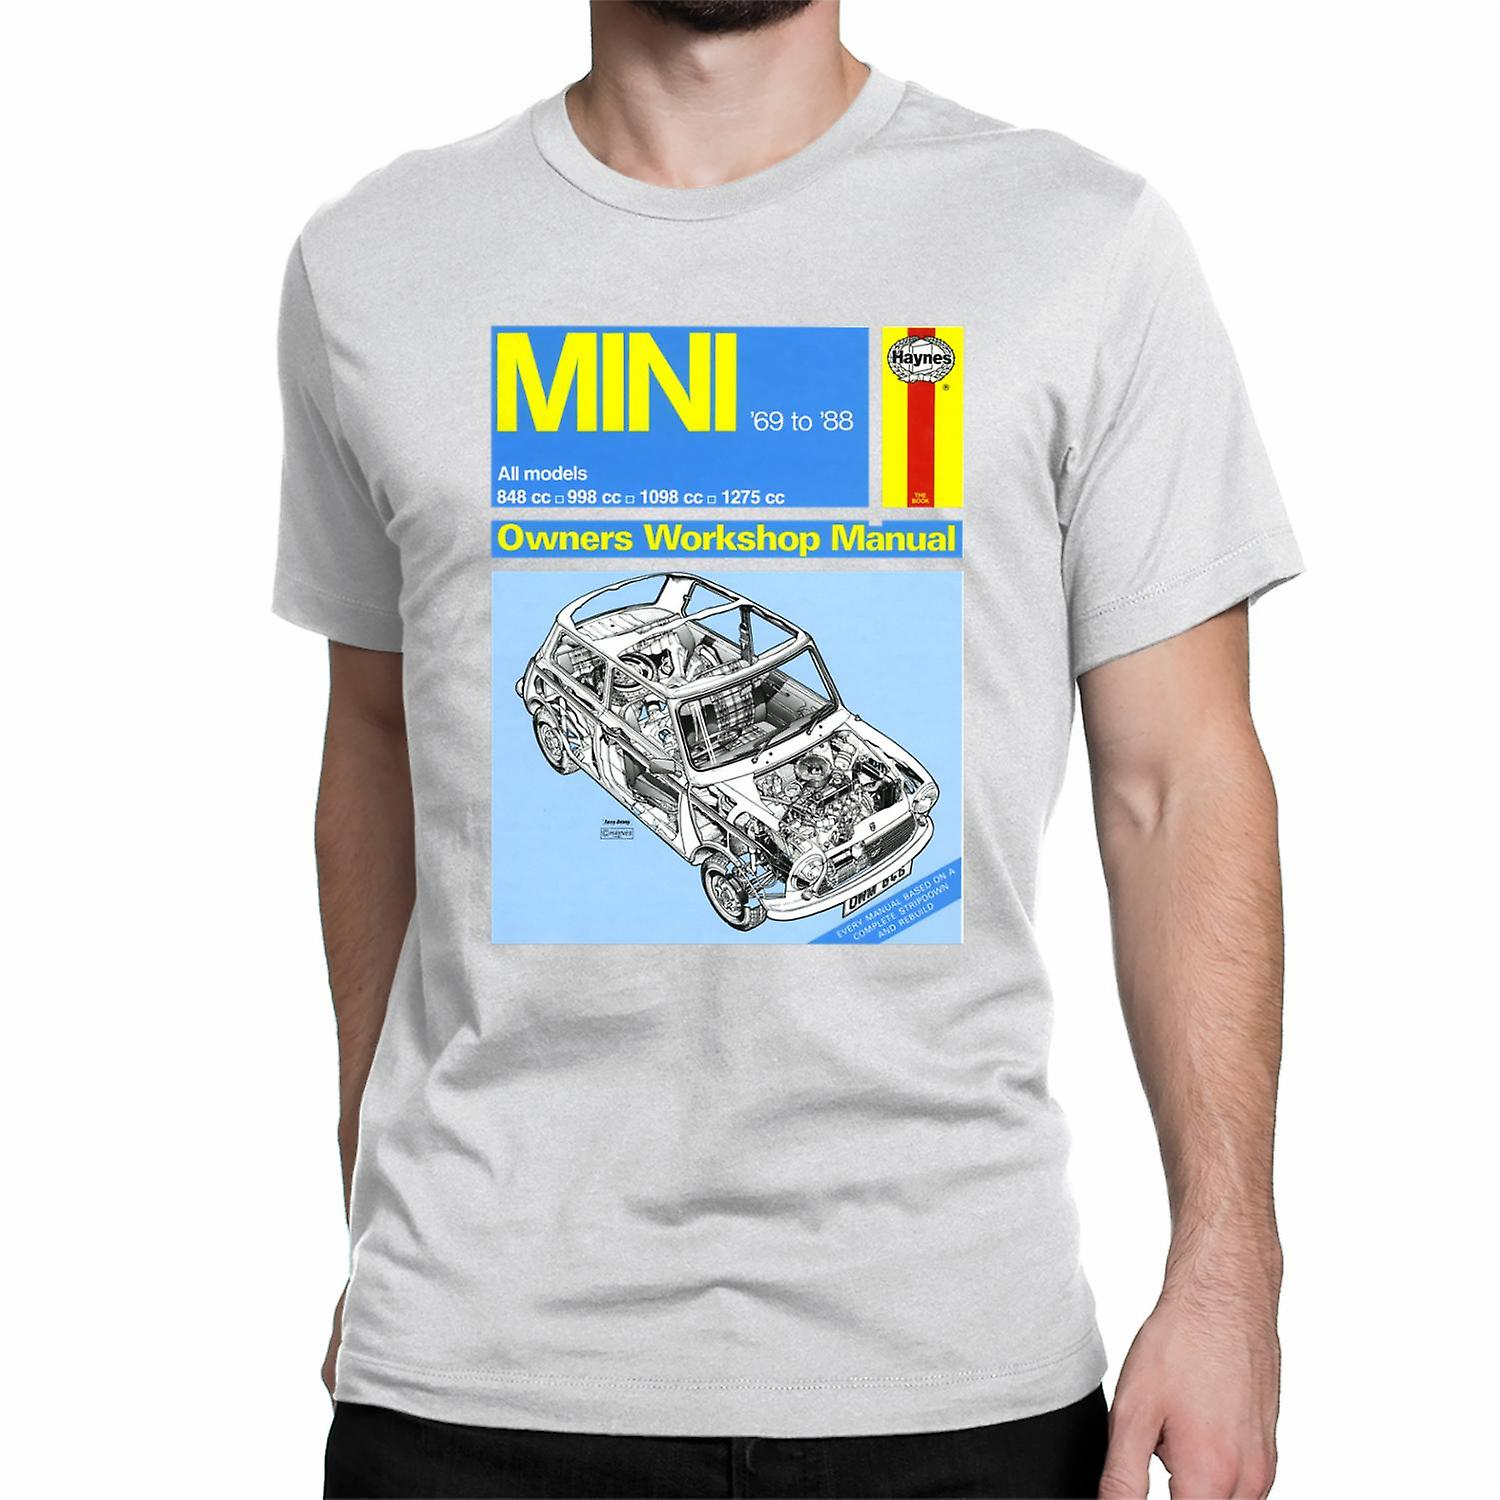 Official Haynes Manual Unisex T-shirt MINI 1969 to 88 All models Owners Workshop Manual